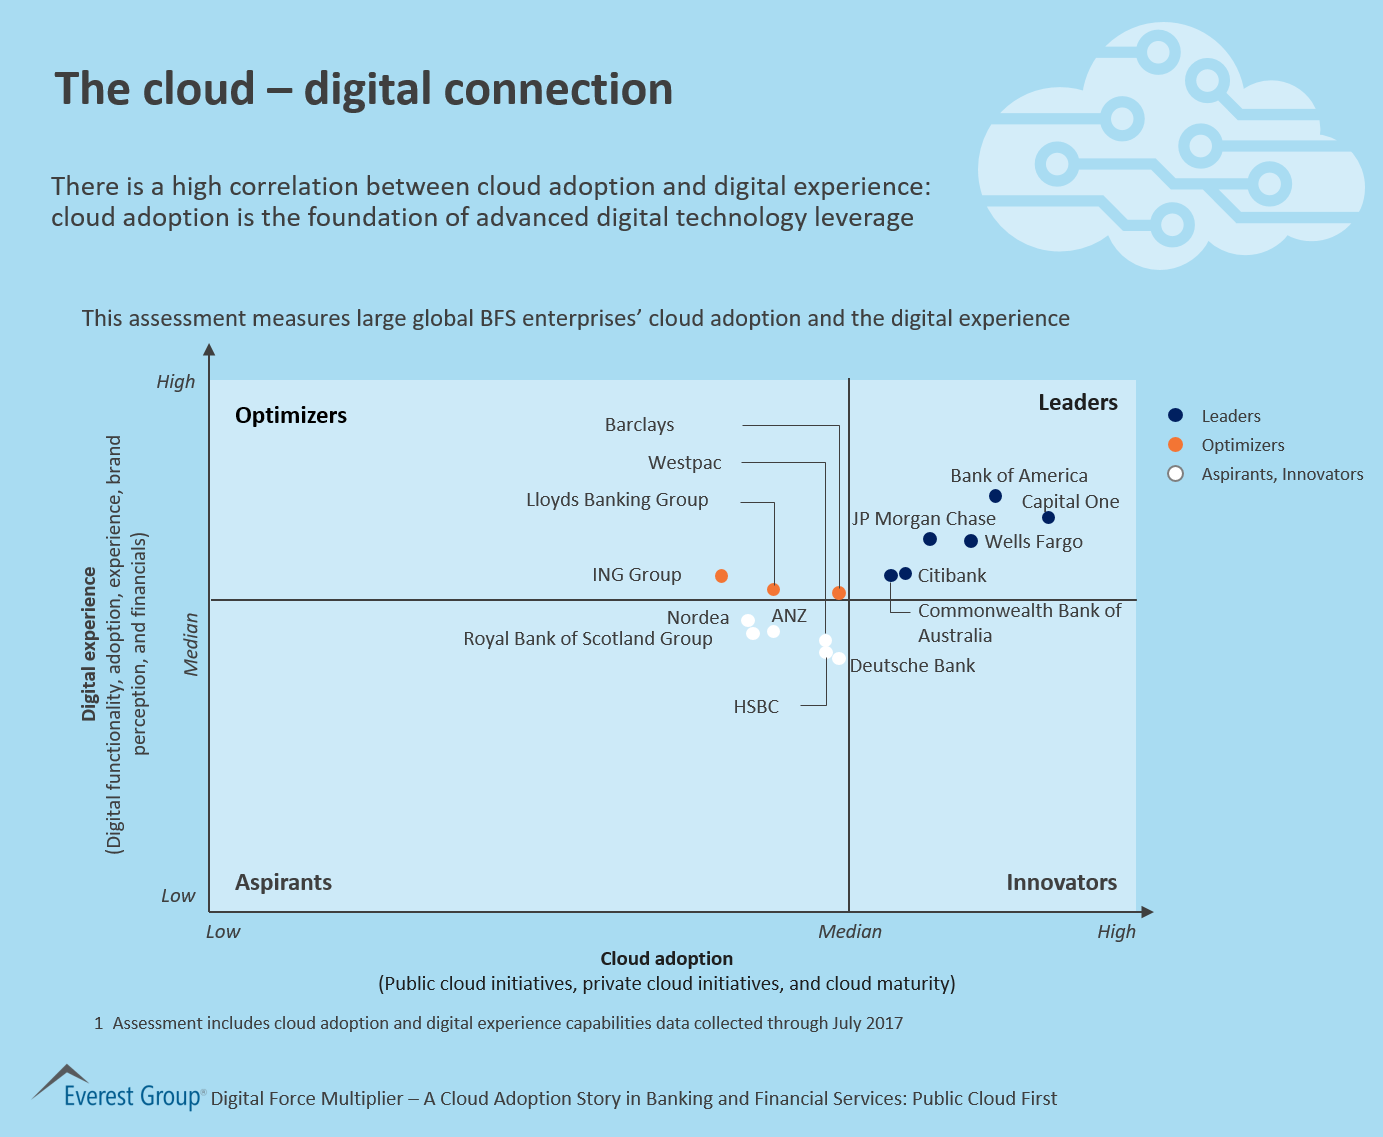 The Cloud – Digital Connection | Market Insights™ - Everest